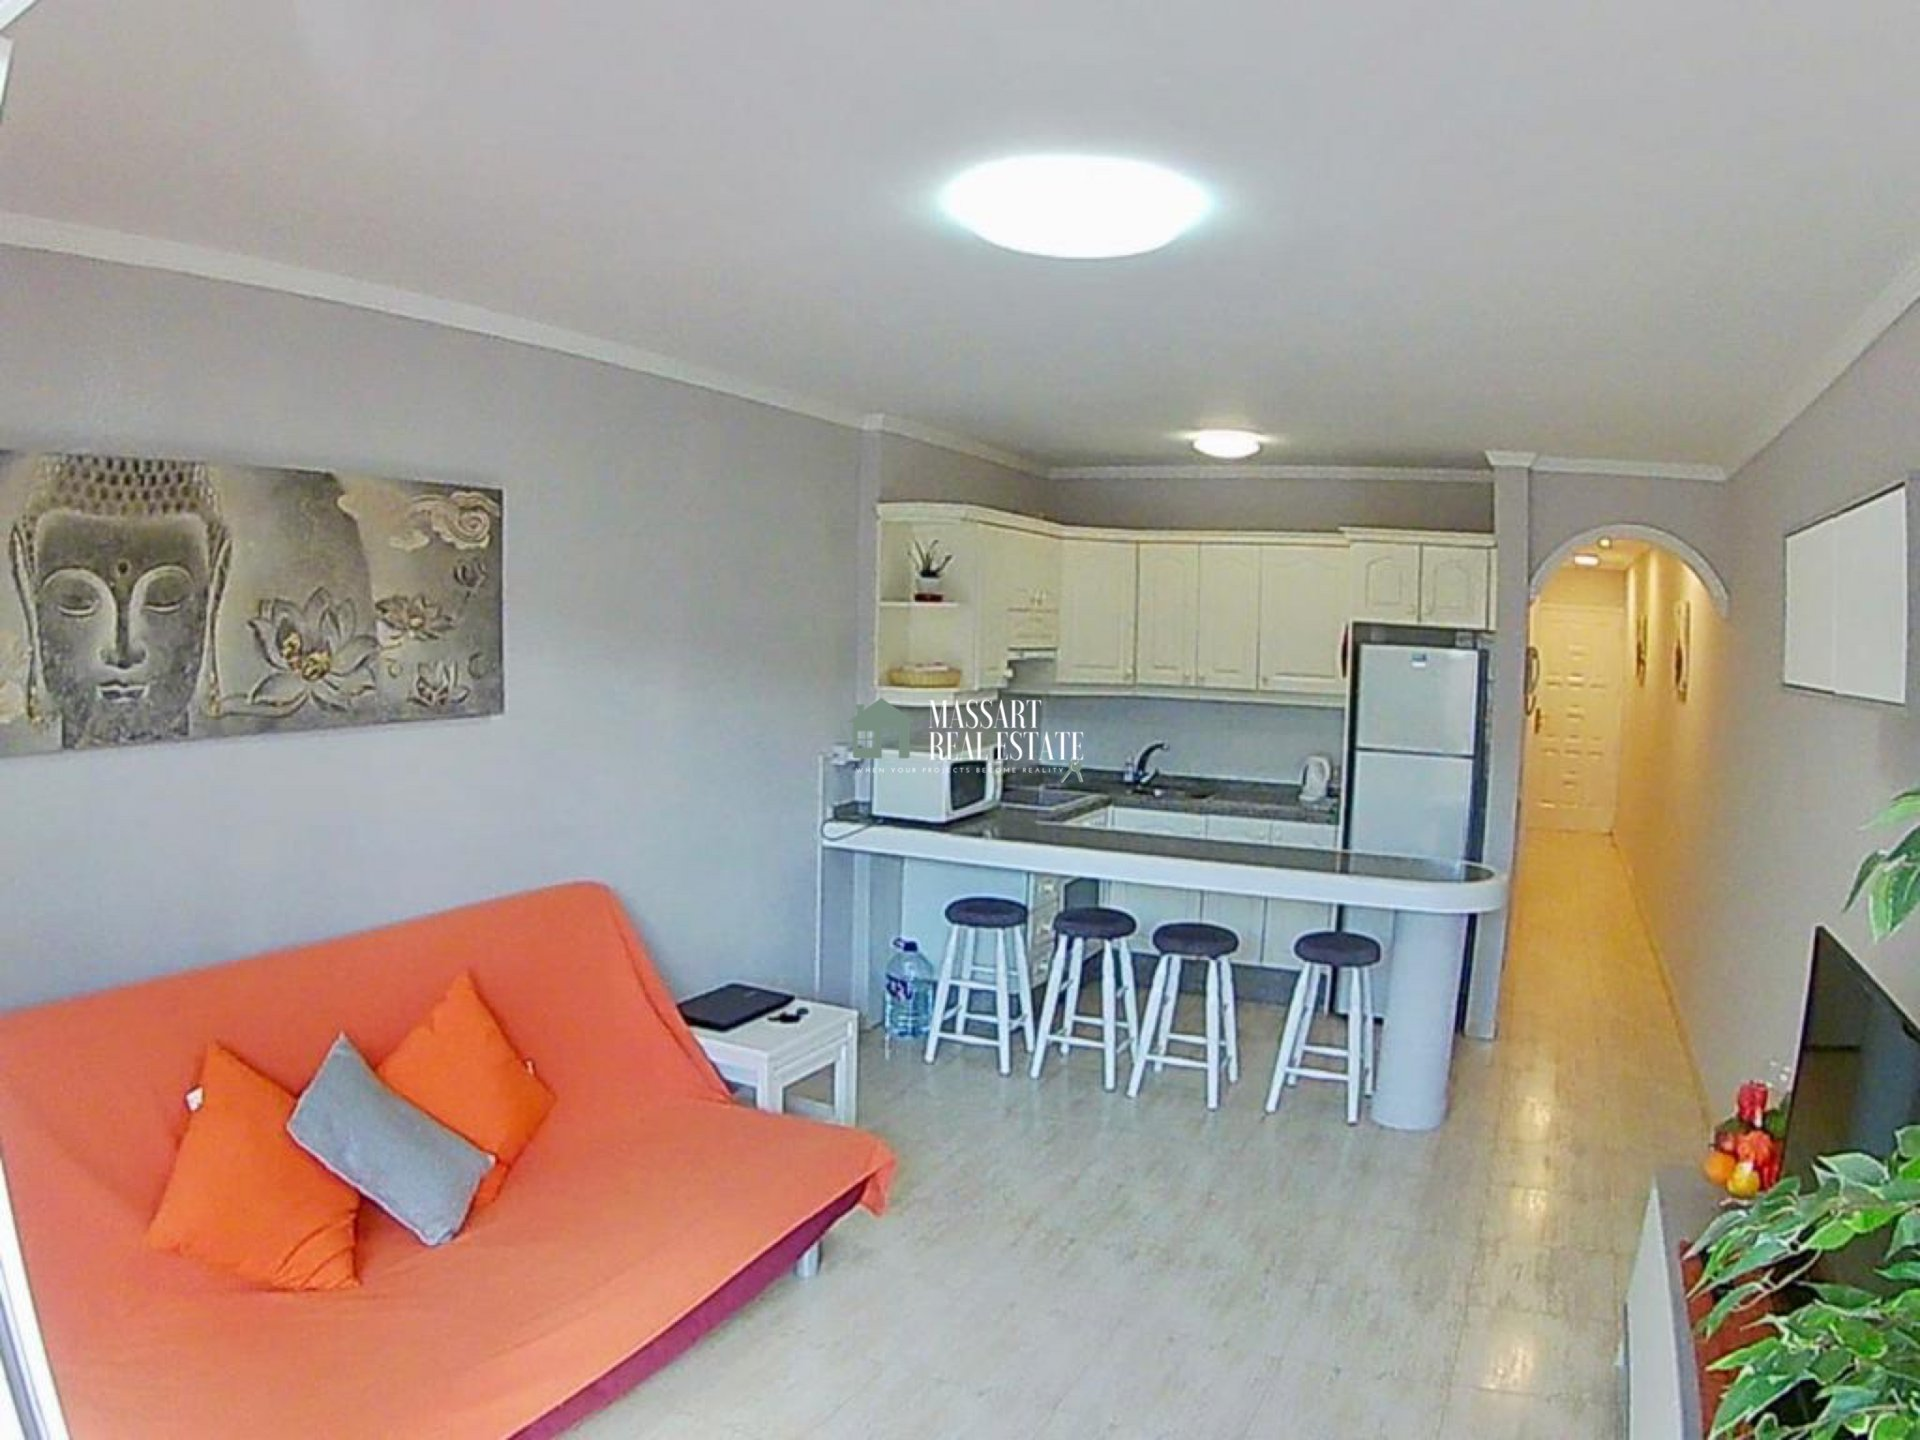 Bright 55 m2 apartment characterized by its good state of conservation and its strategic location ... very close to the popular area of San Telmo, in Los Cristianos.